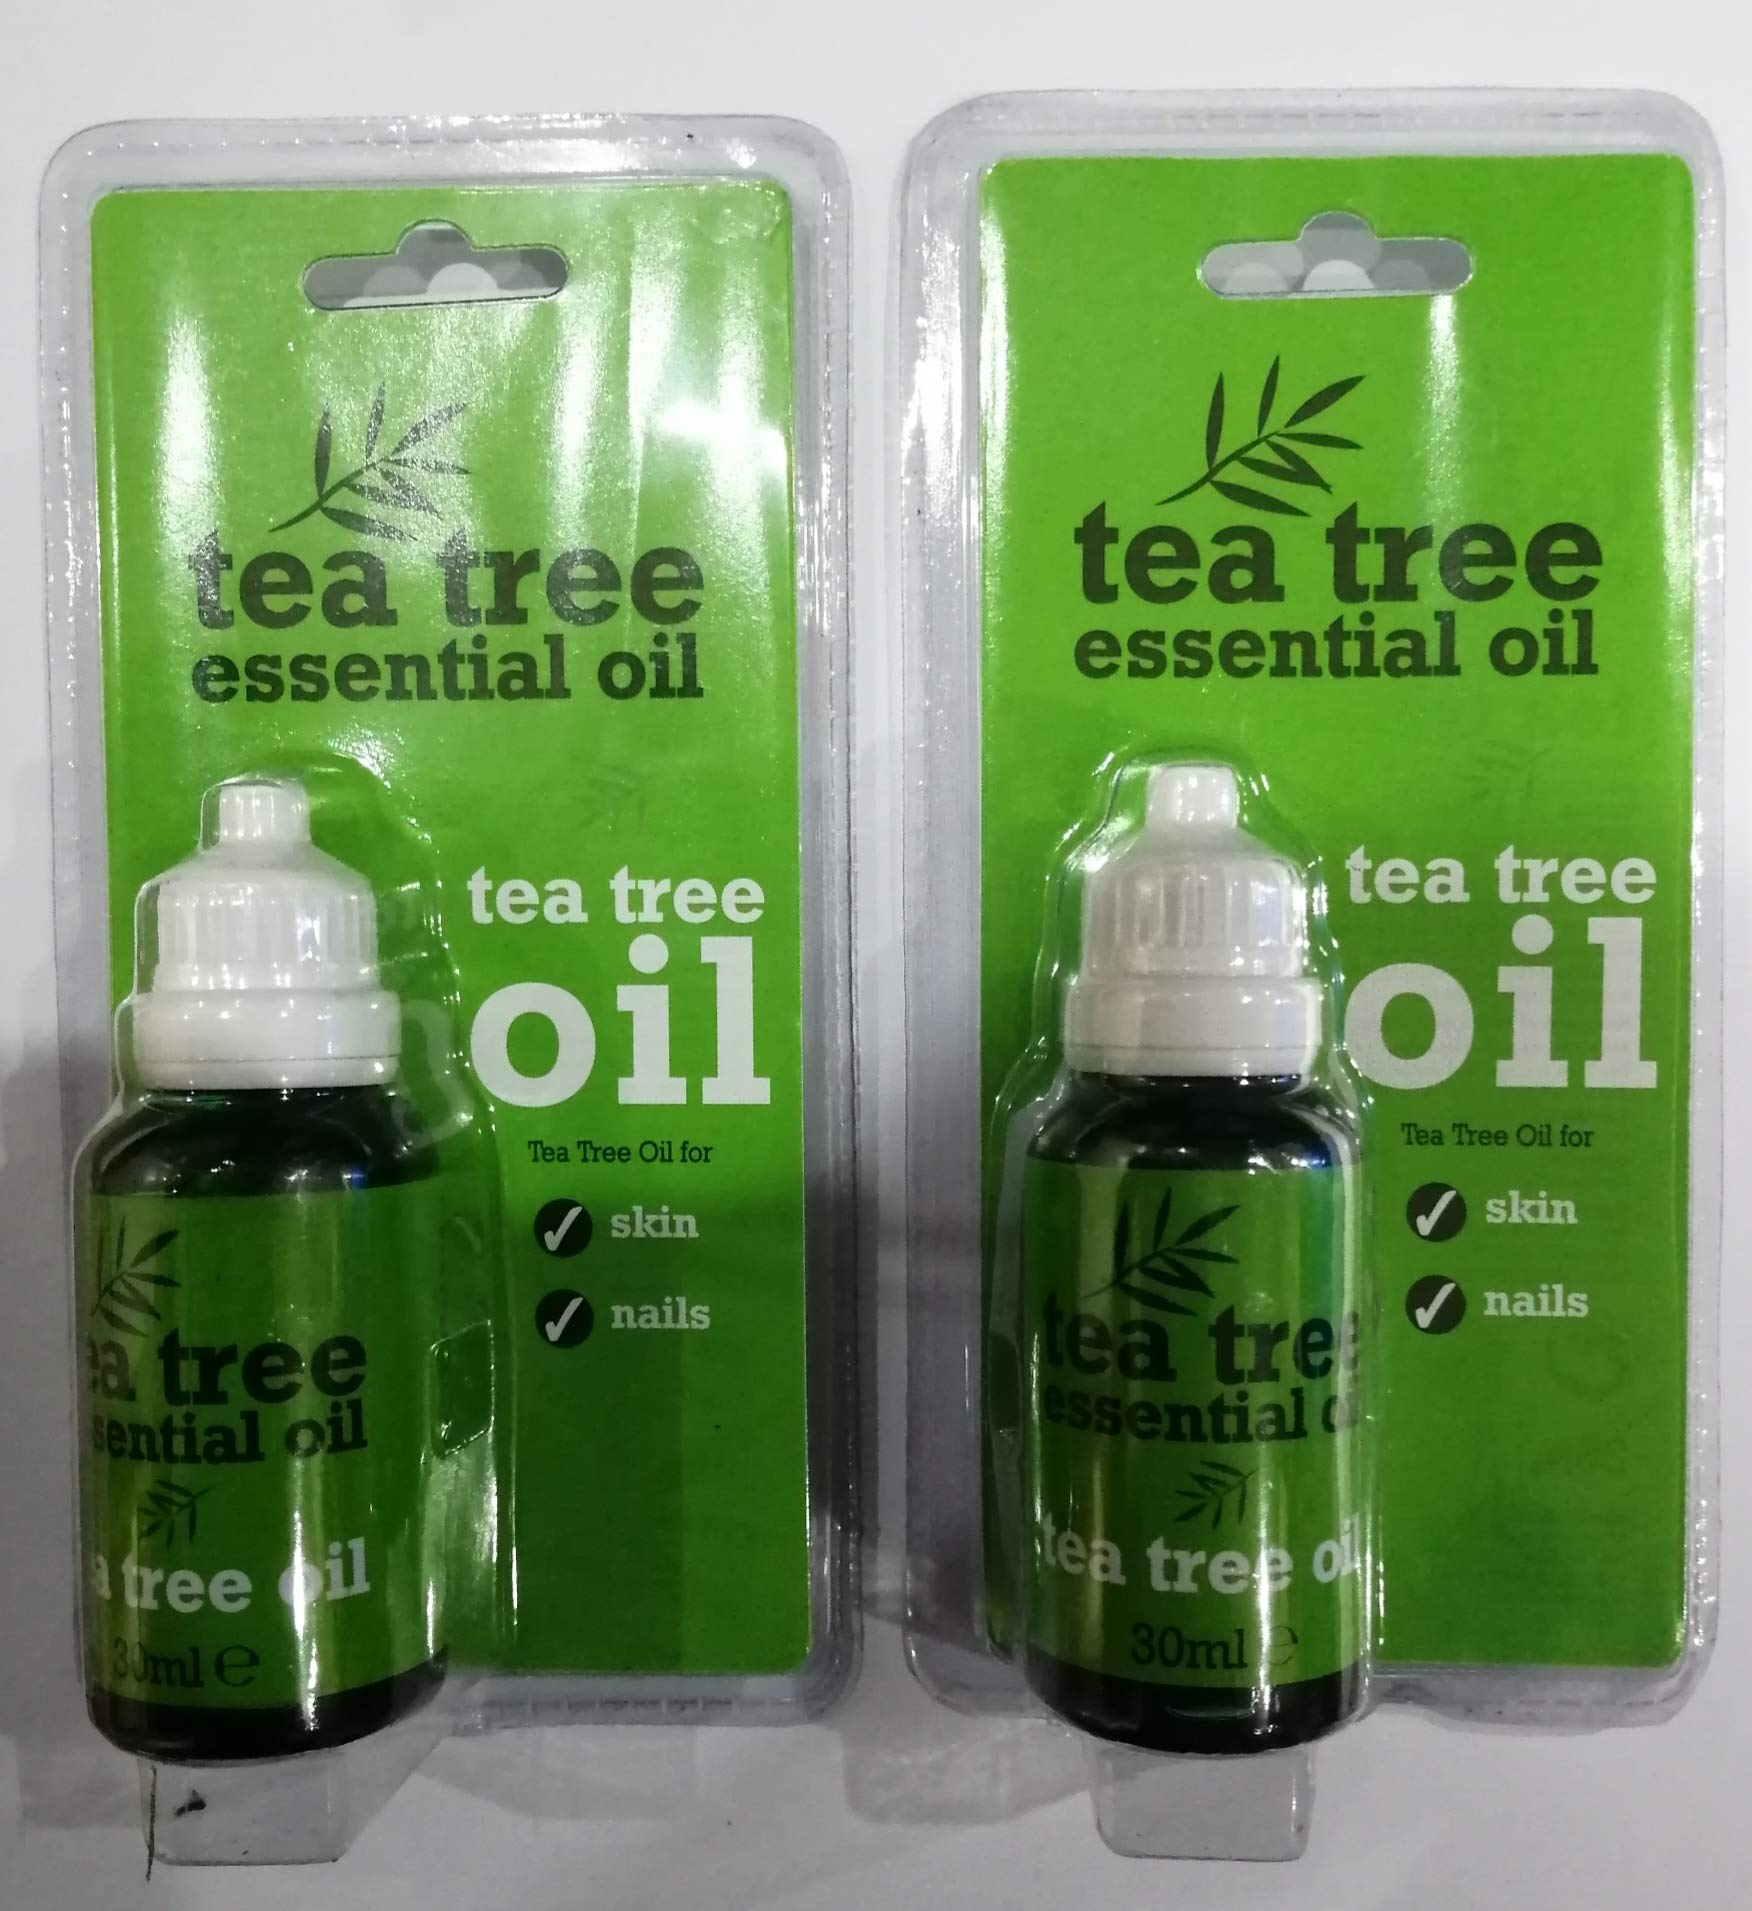 Tea Tree Essential Oil Tea Tree Essential Oil Pure 30ml (Pack of 2)